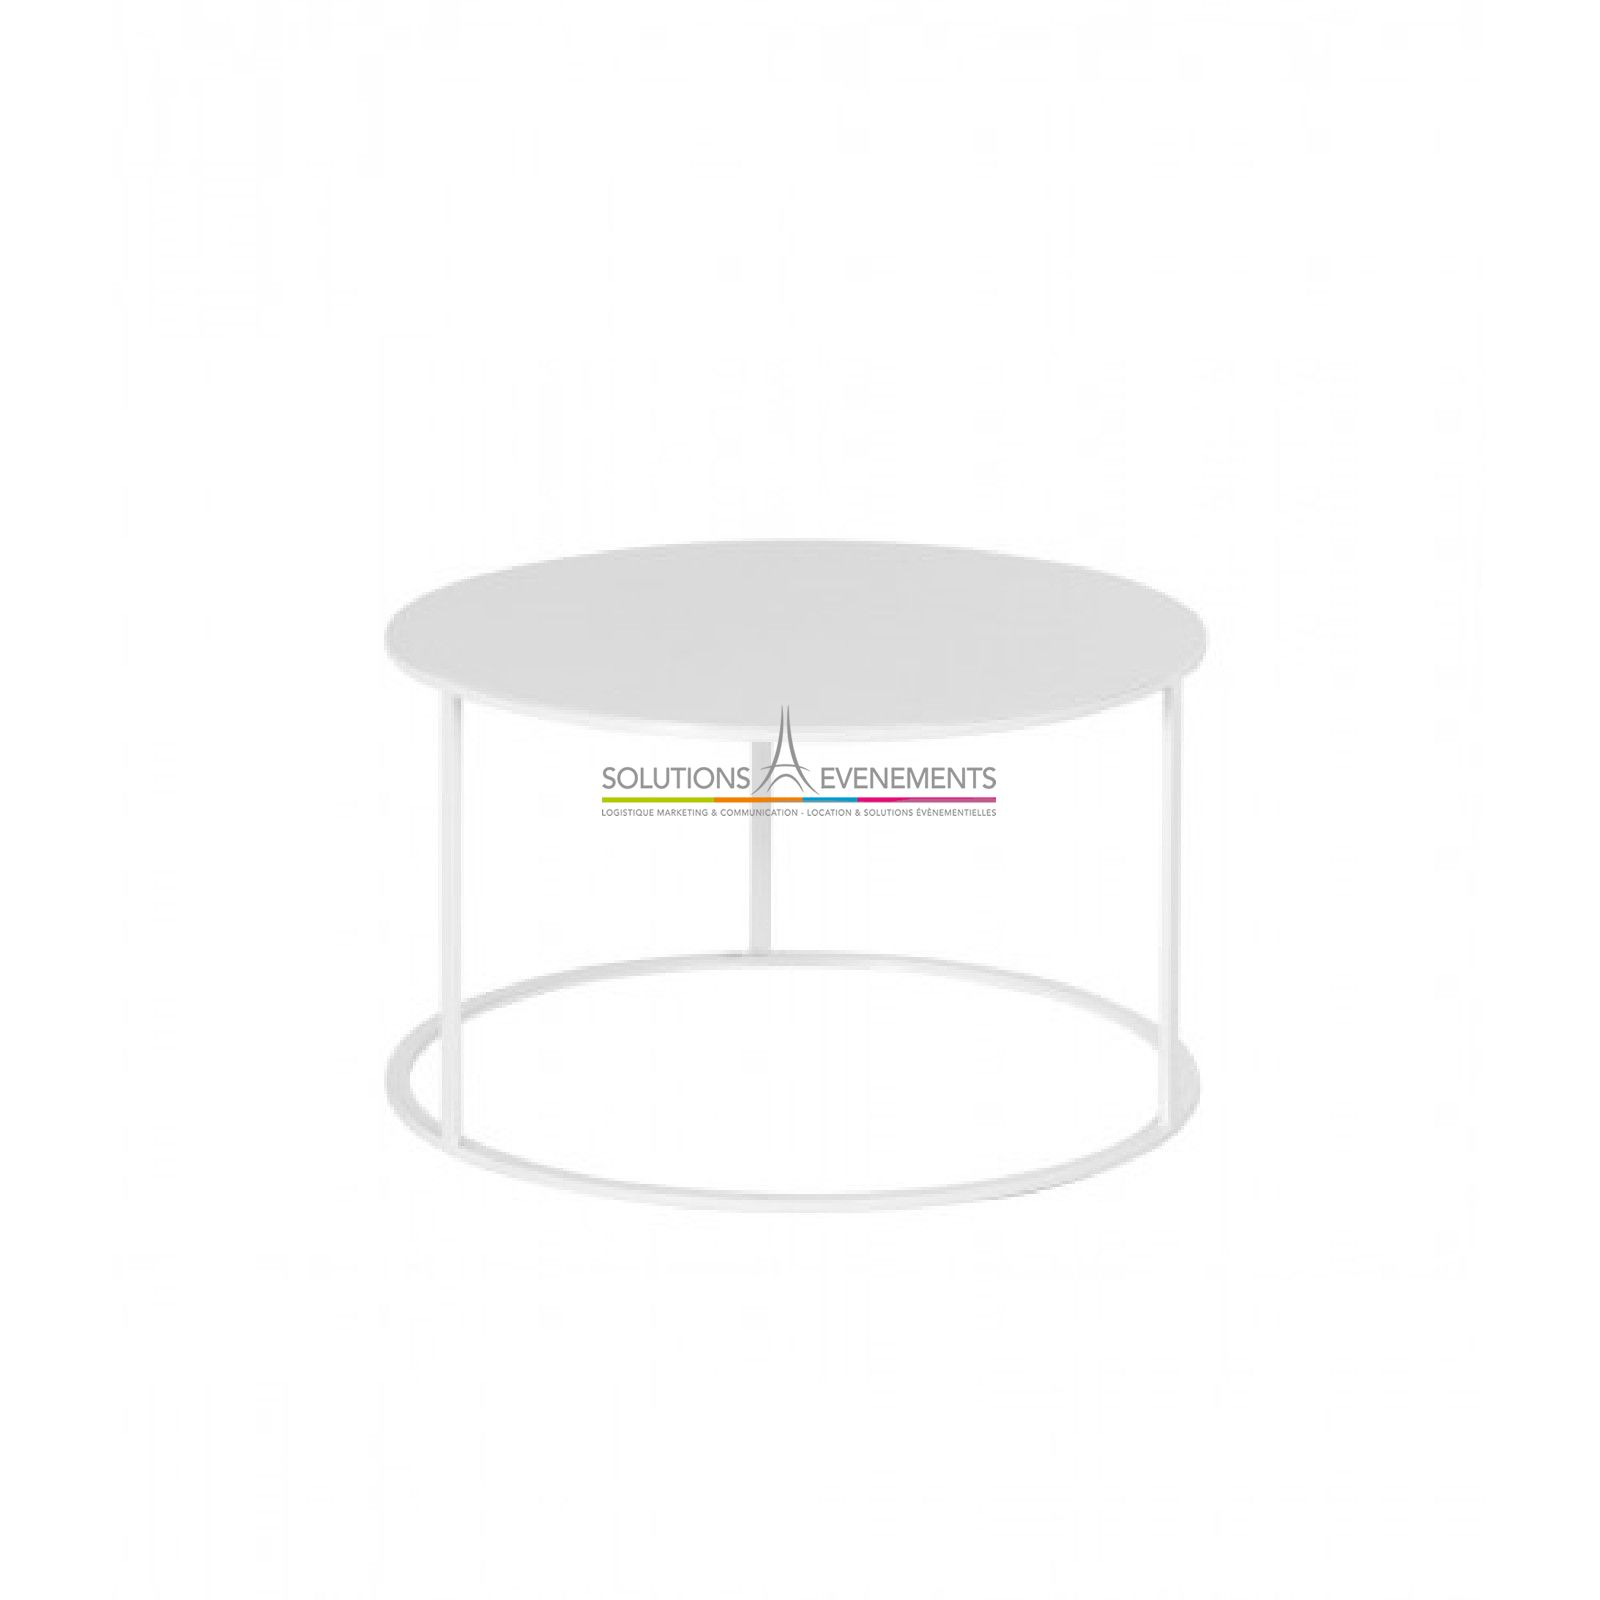 Location Table Basse Mobiler Design Pour Evenement